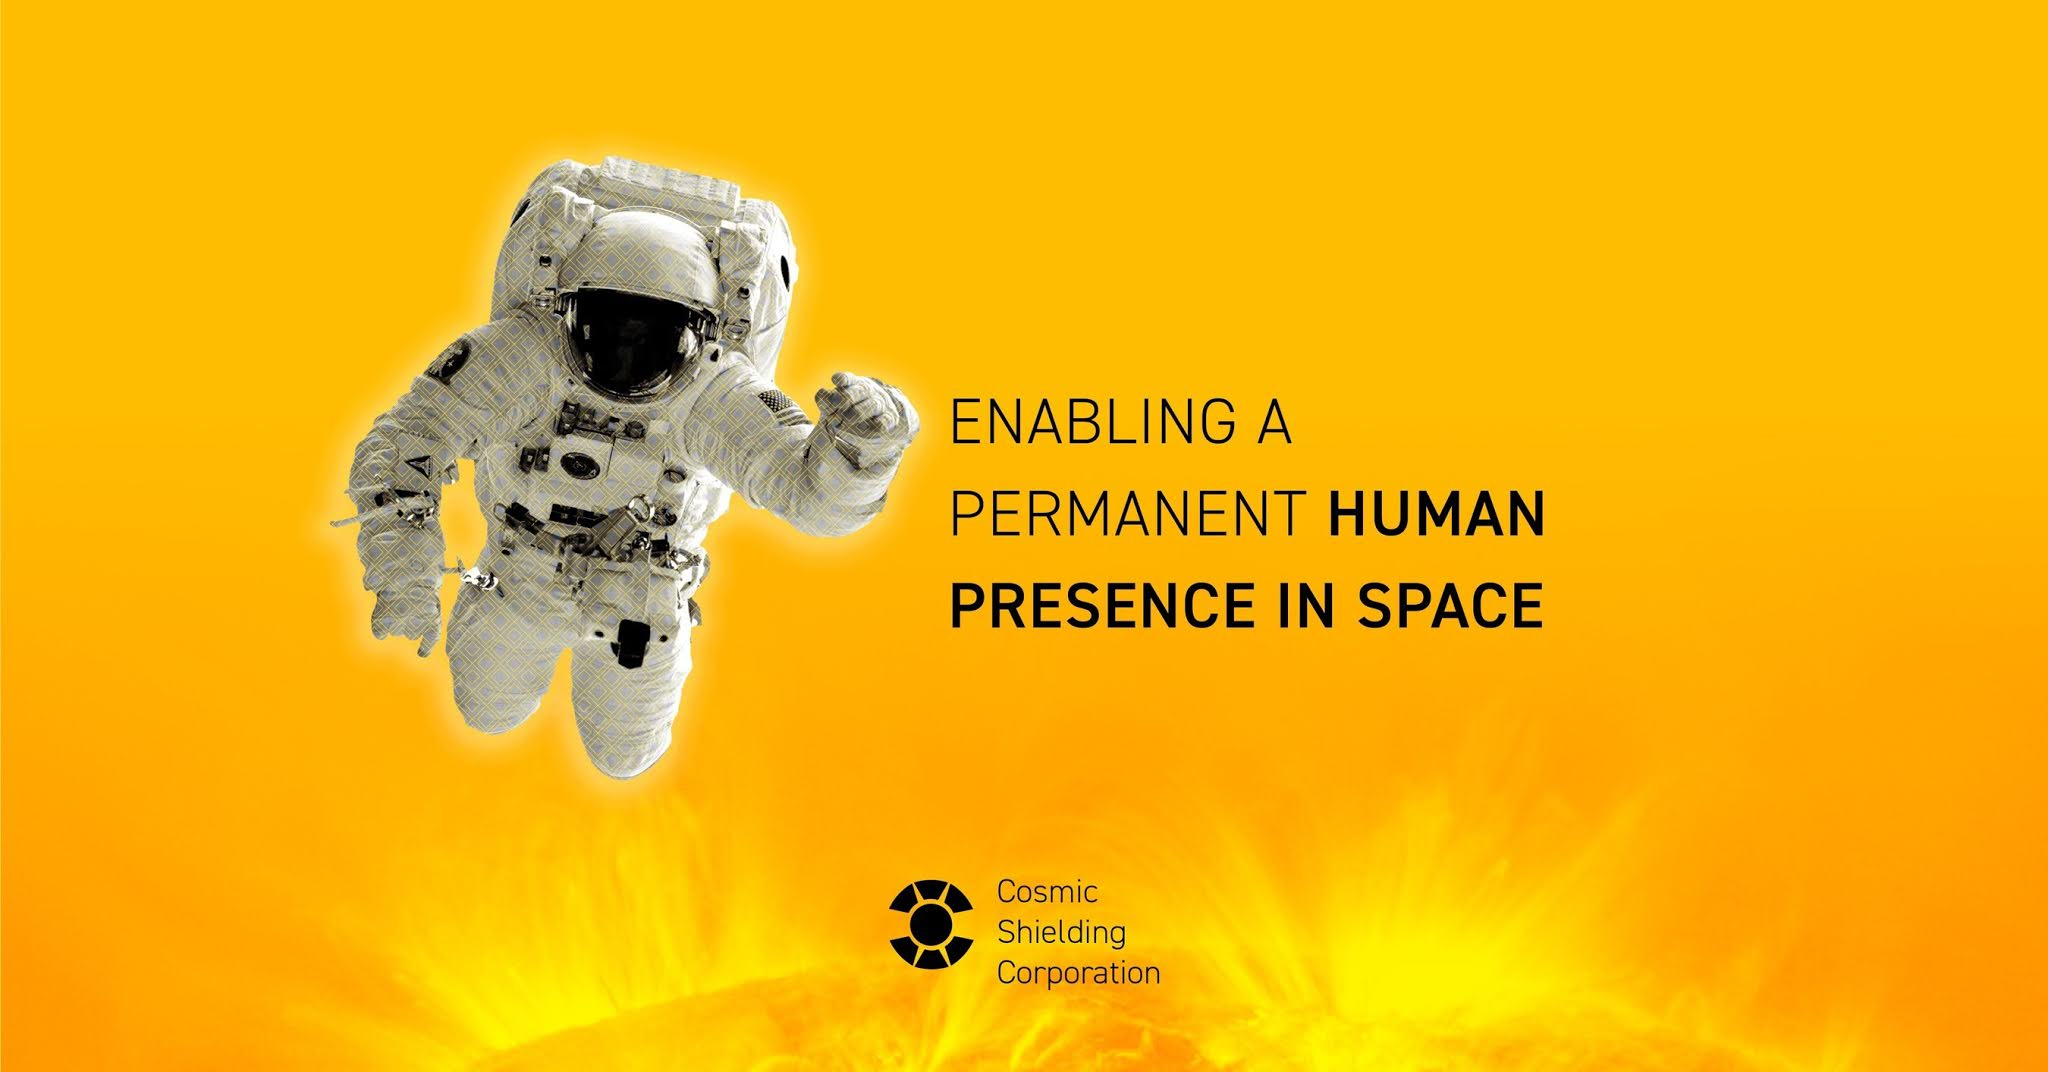 Cosmic Shielding Corporation raises $1 million in pre-seed round to enable a permanent human presence in space